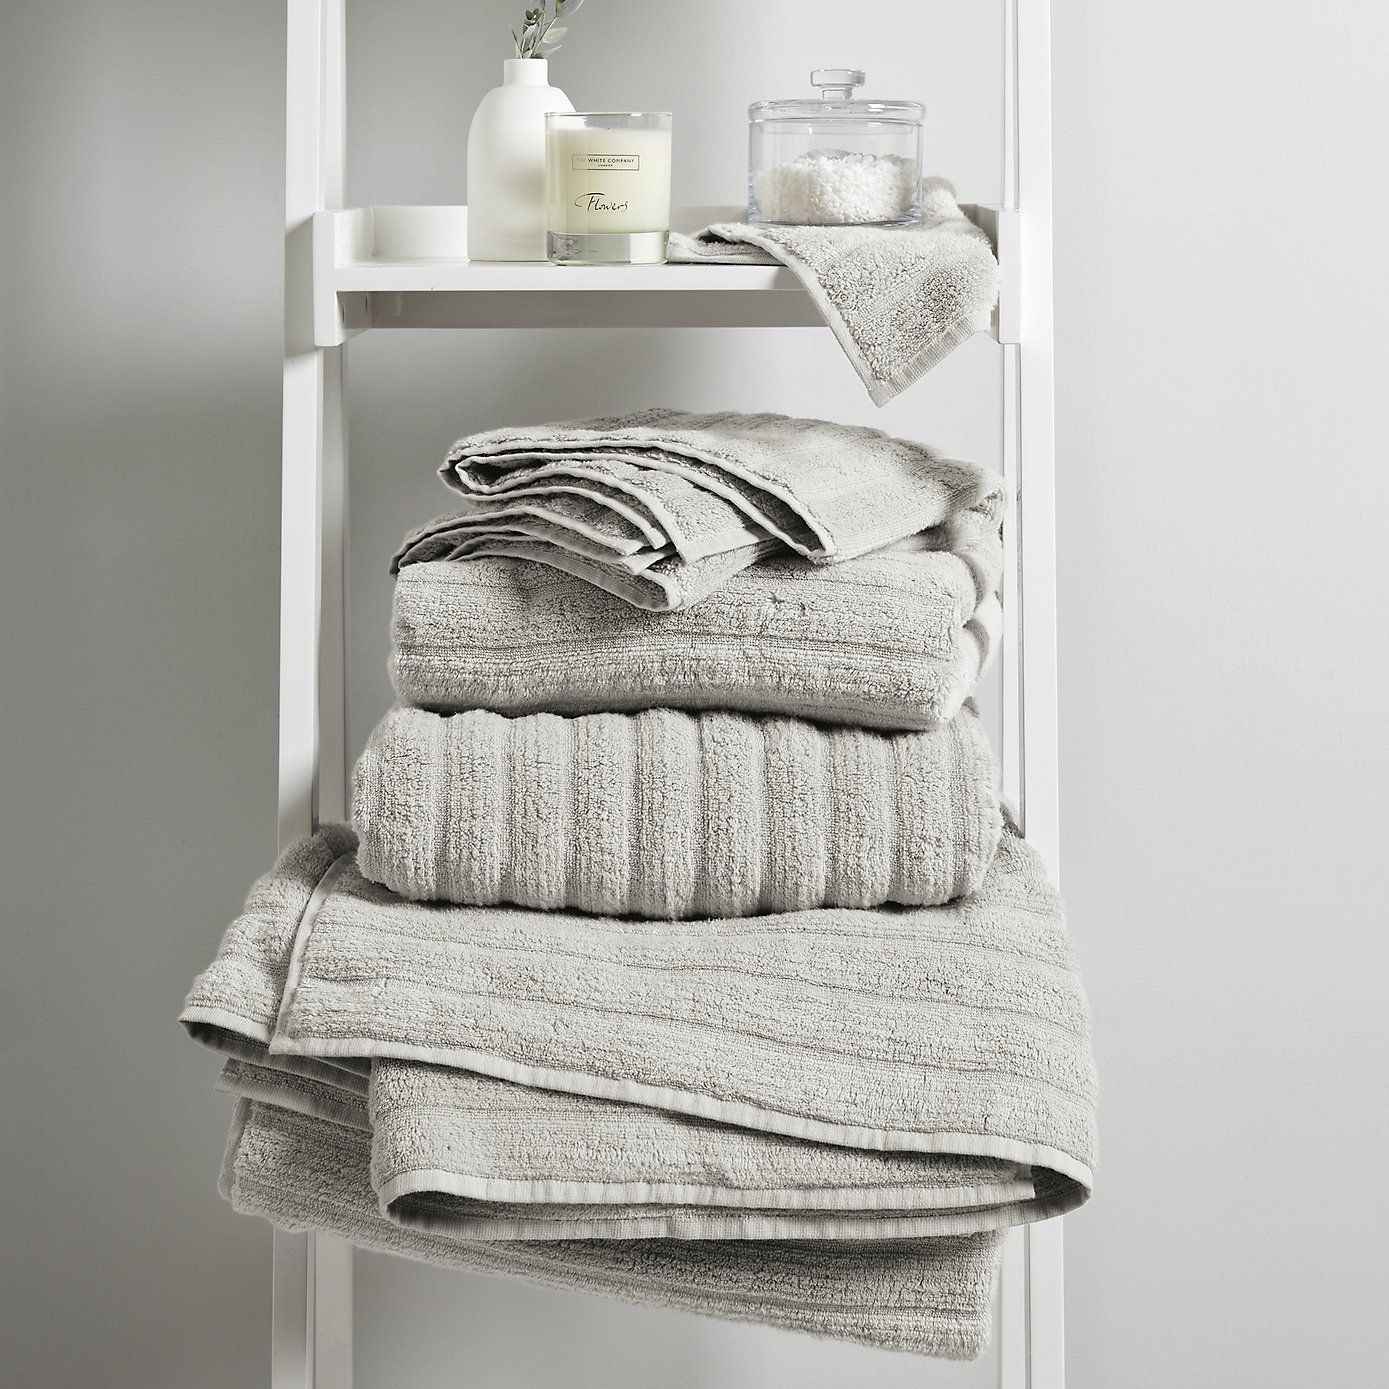 Hydrocotton Bath Towels Stunning Hydrocotton Towels  White Company Towels And Bungalow Decorating Inspiration